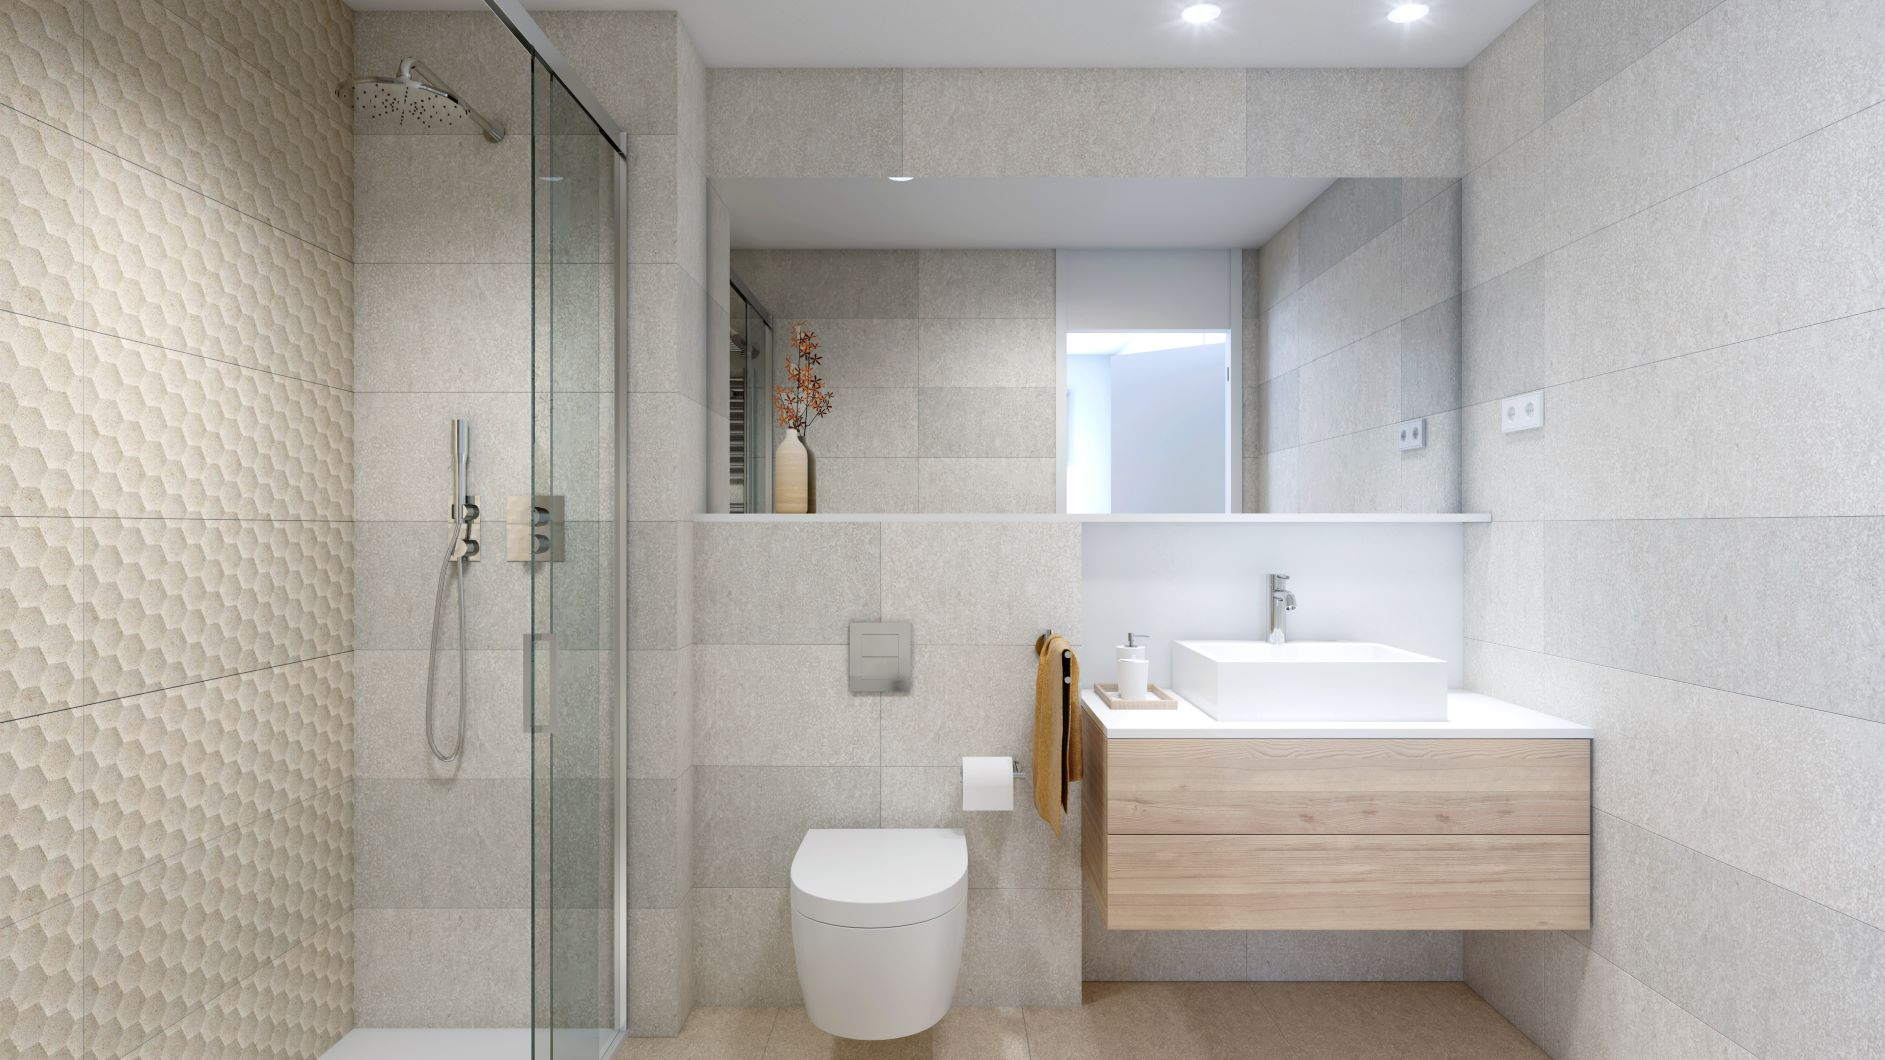 Apartment in Barcelona - poble nou. Private parking, Private swimming pool.3 bedrooms. For sale: 498.000 €.